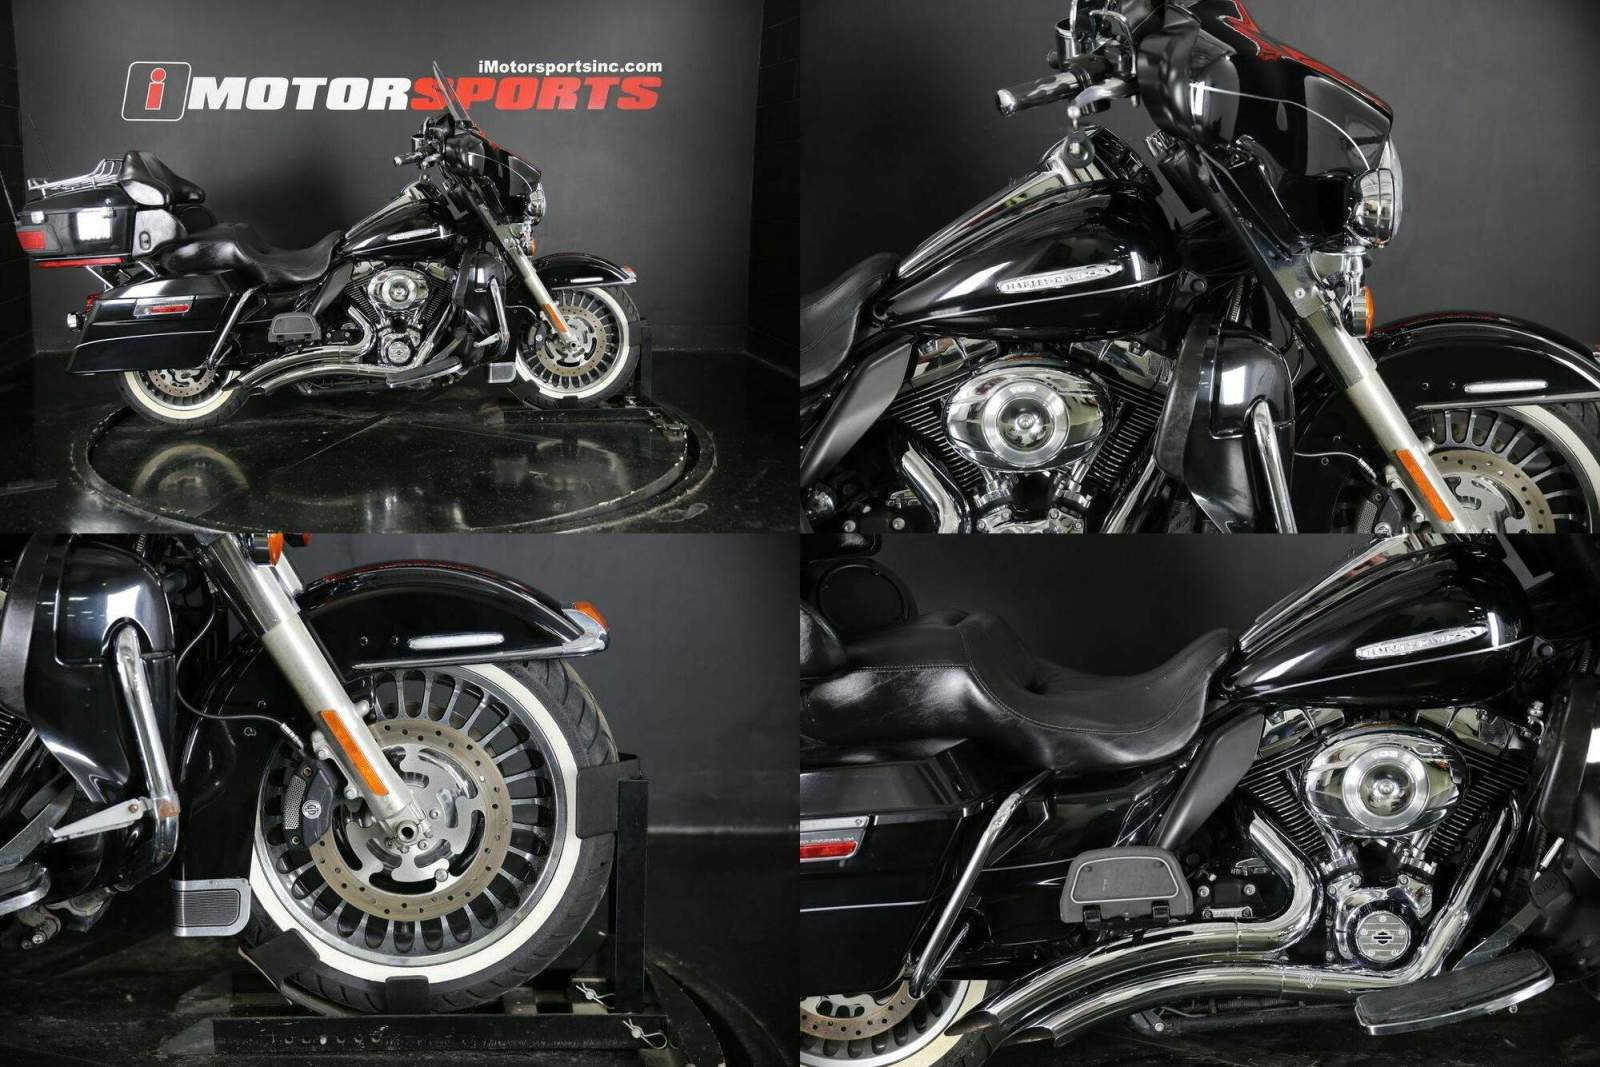 2013 Harley Davidson FLHTK   Electra Glide Ultra Limited  for sale craigslist